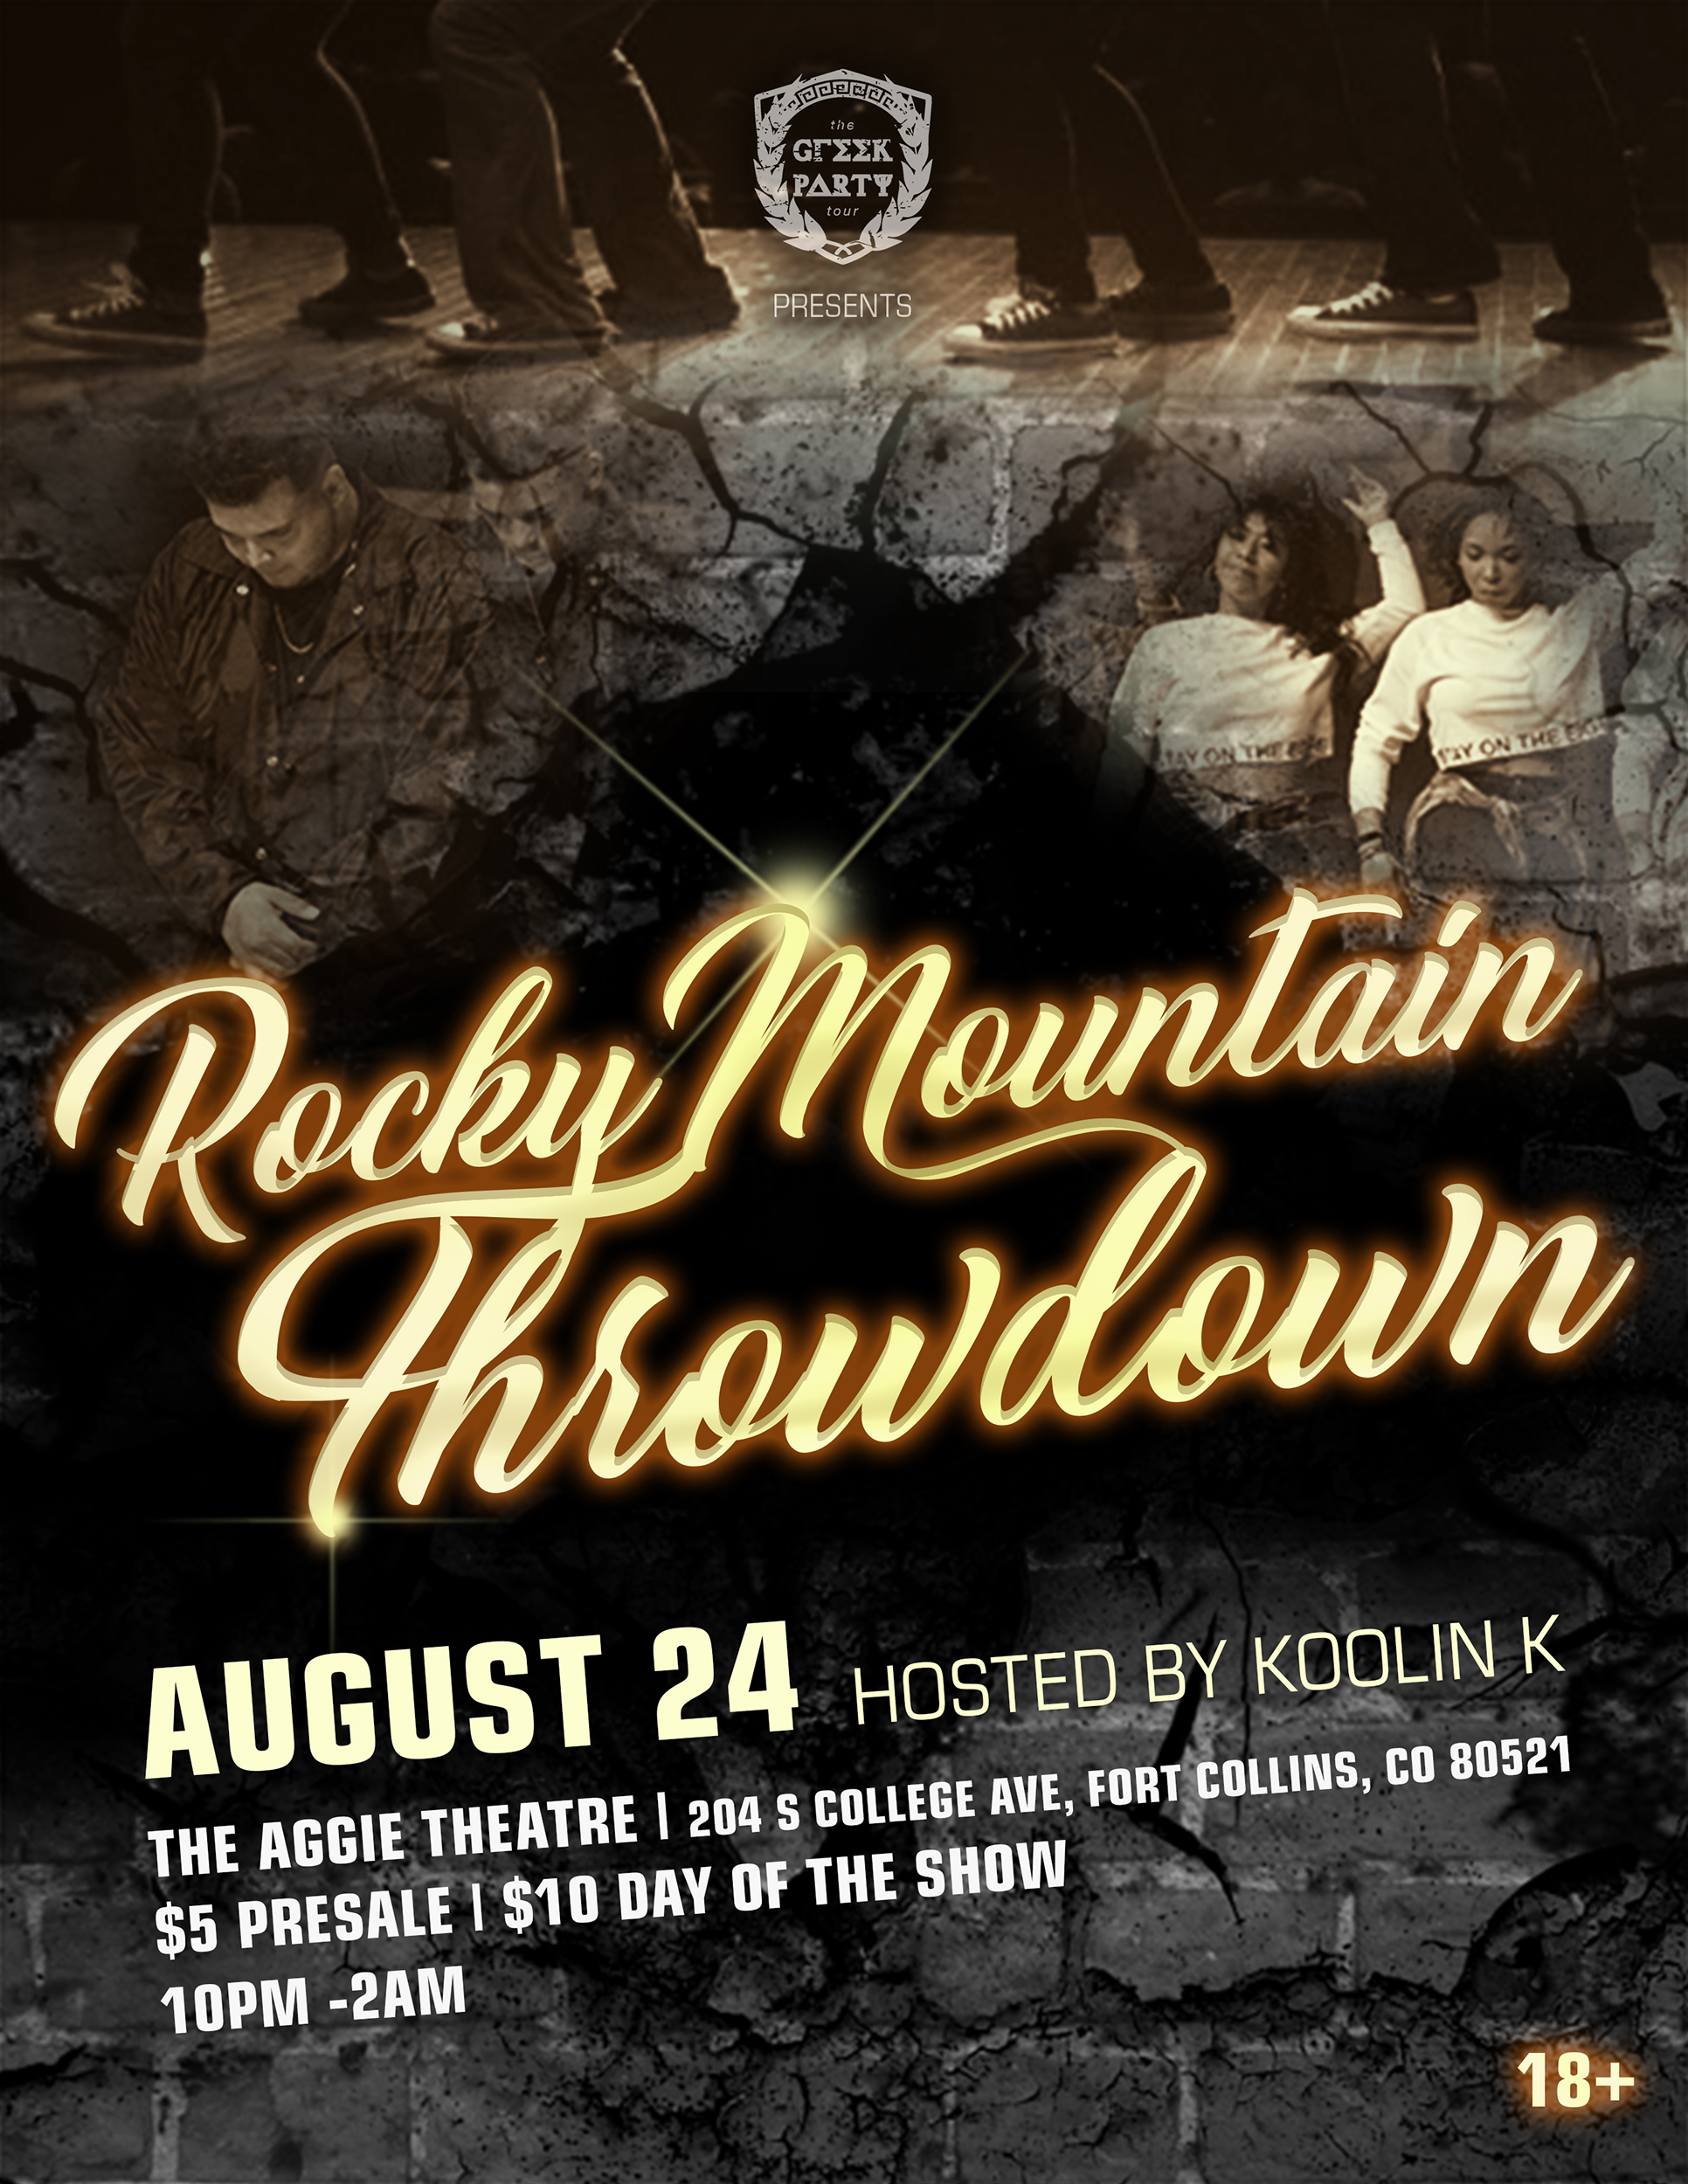 Rocky-Mountain-Throwdown-Flyer.jpg